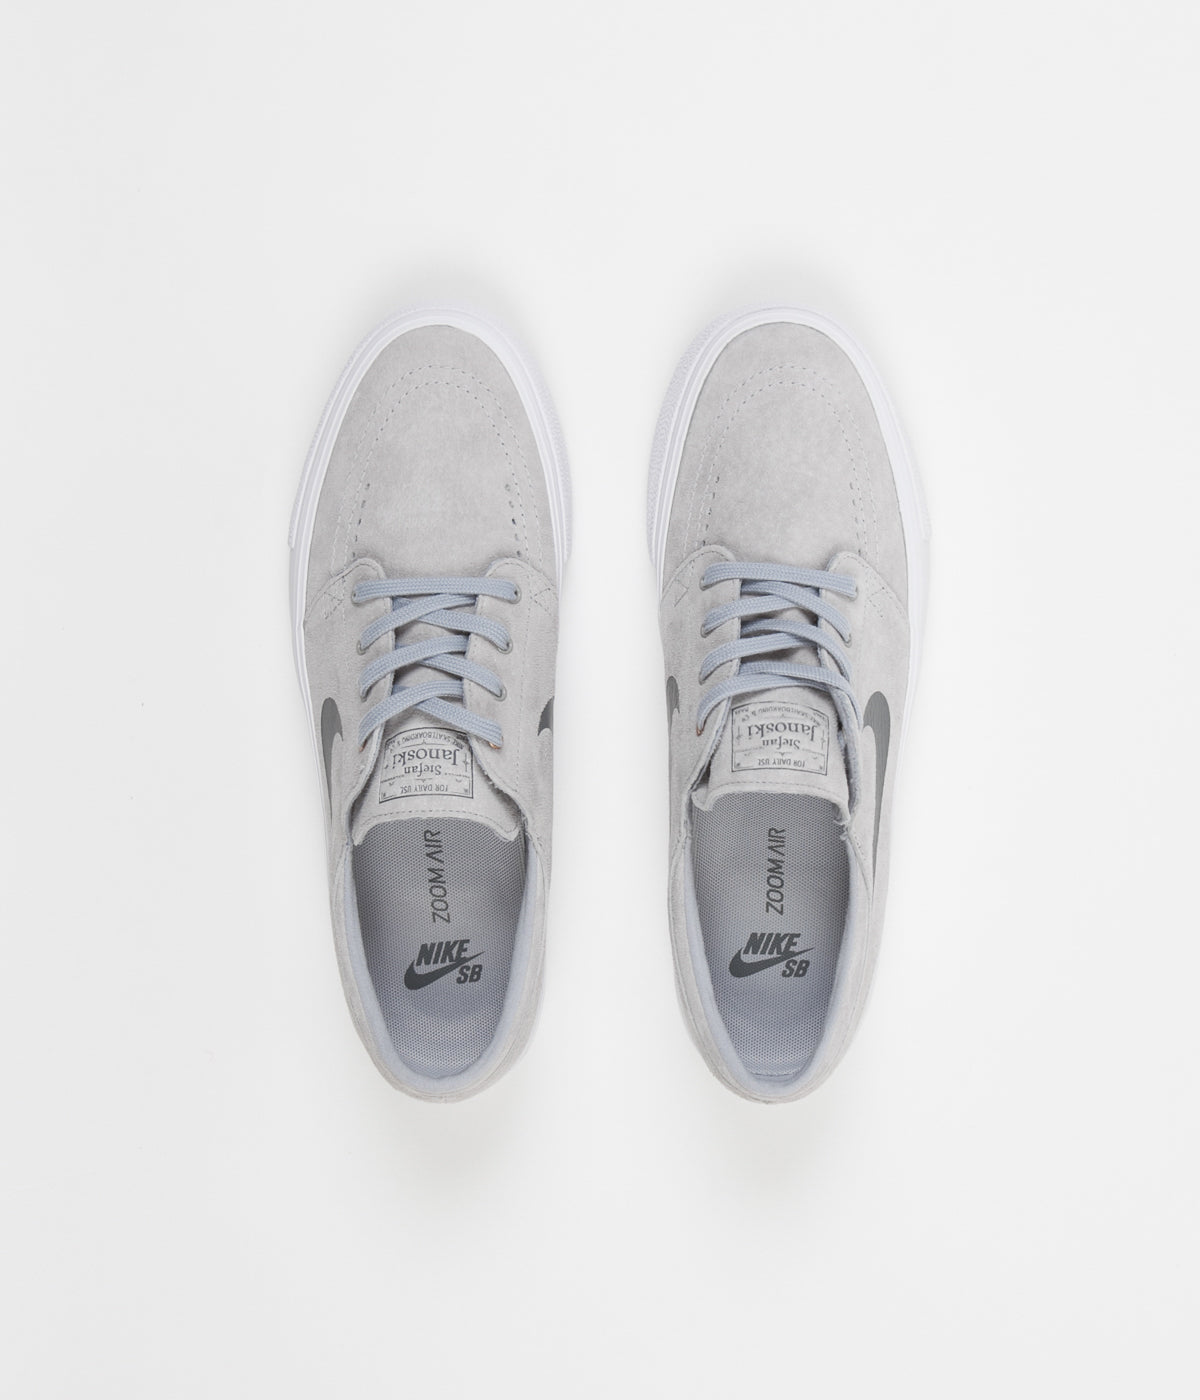 Nike SB Stefan Janoski HT Shoes - Wolf Grey   Dark Grey - Metallic Gold ... 4add97ecf